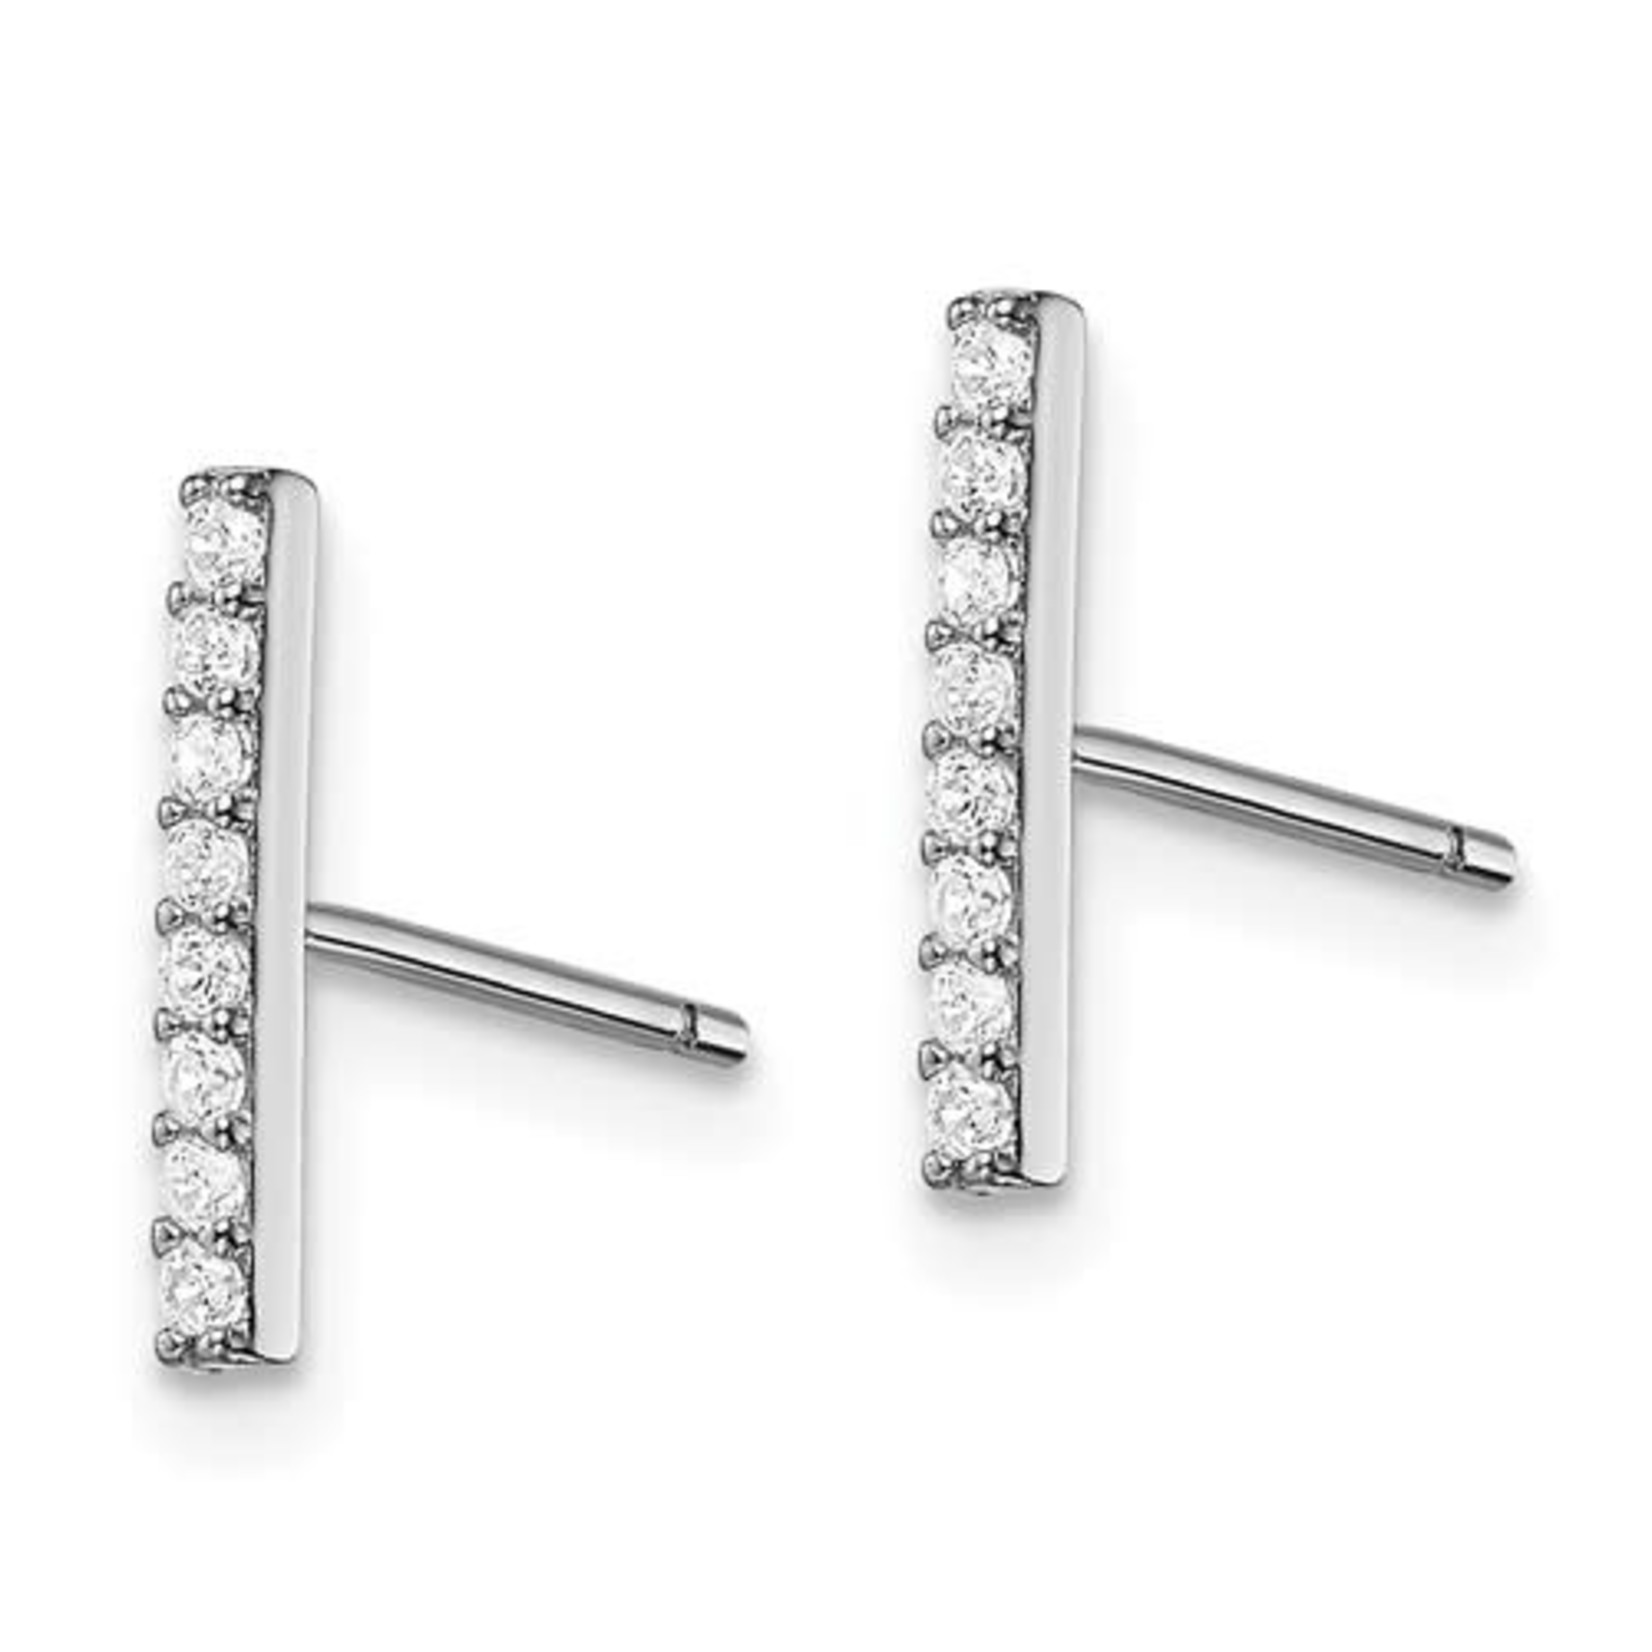 This Is Life CZ Bar Post Earrings - Sterling Sliver